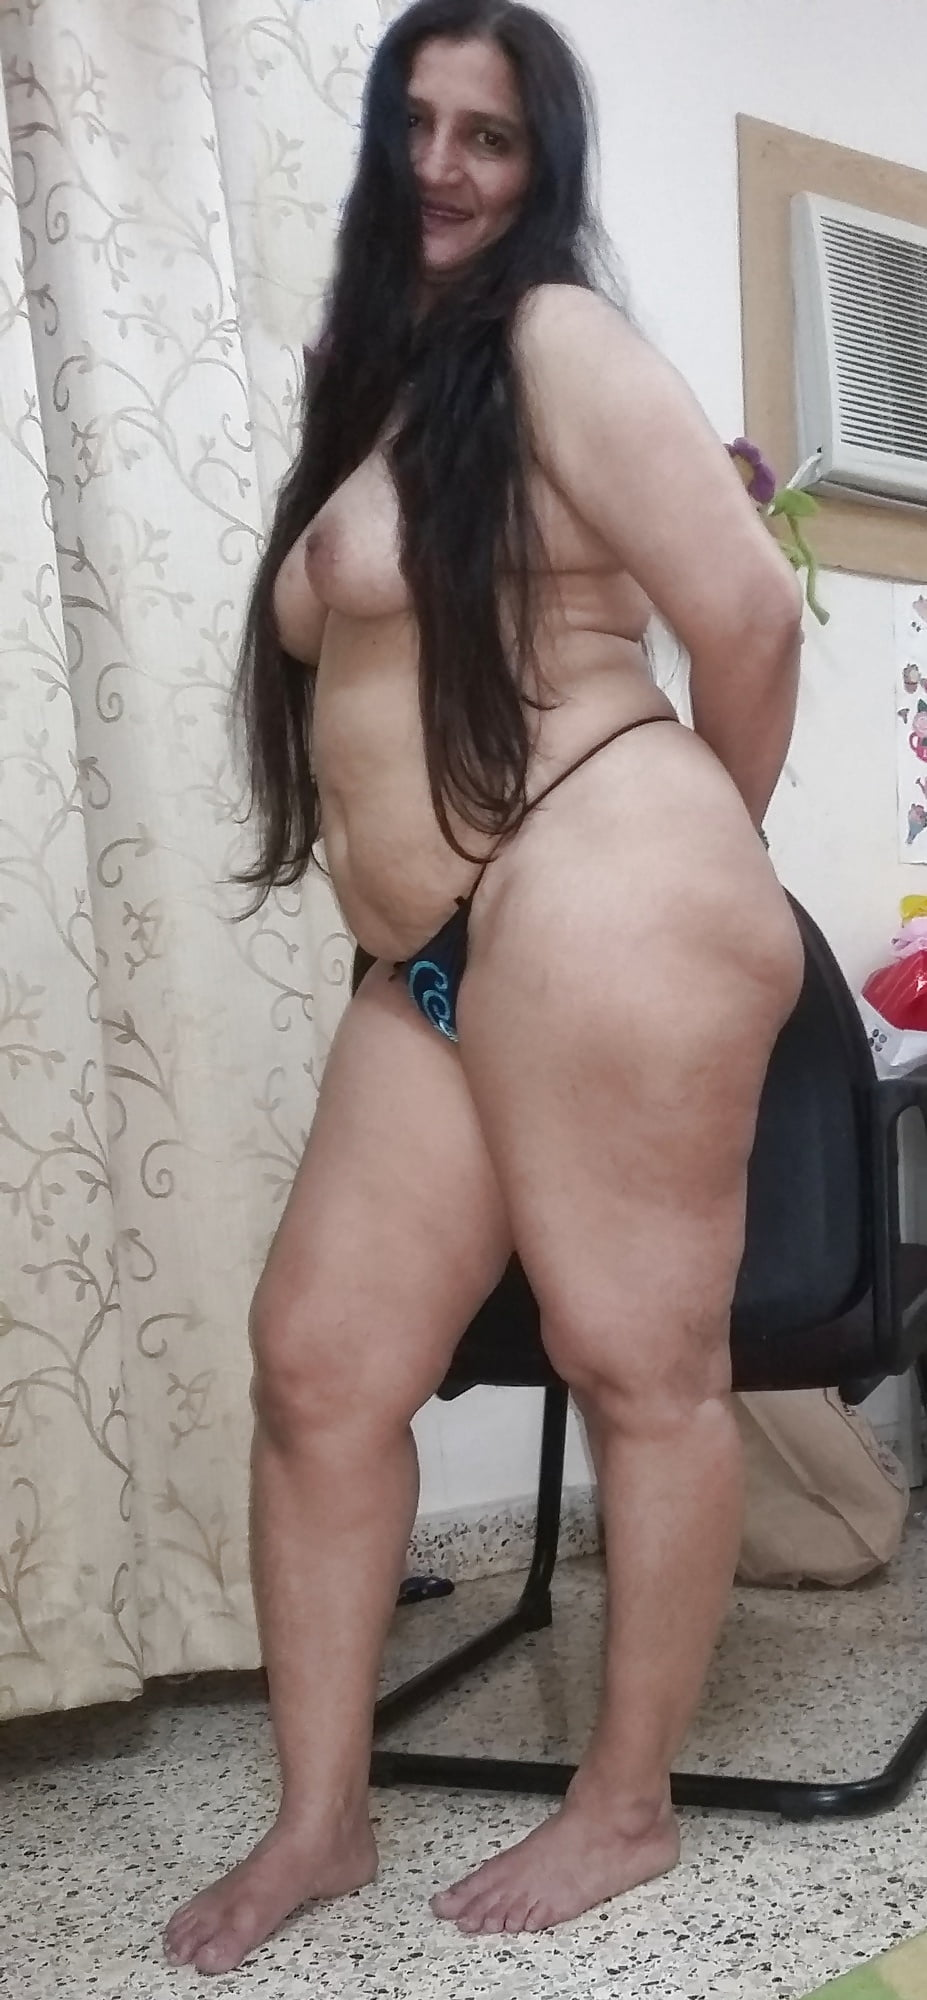 Ready russian nude girls and aunties really. join